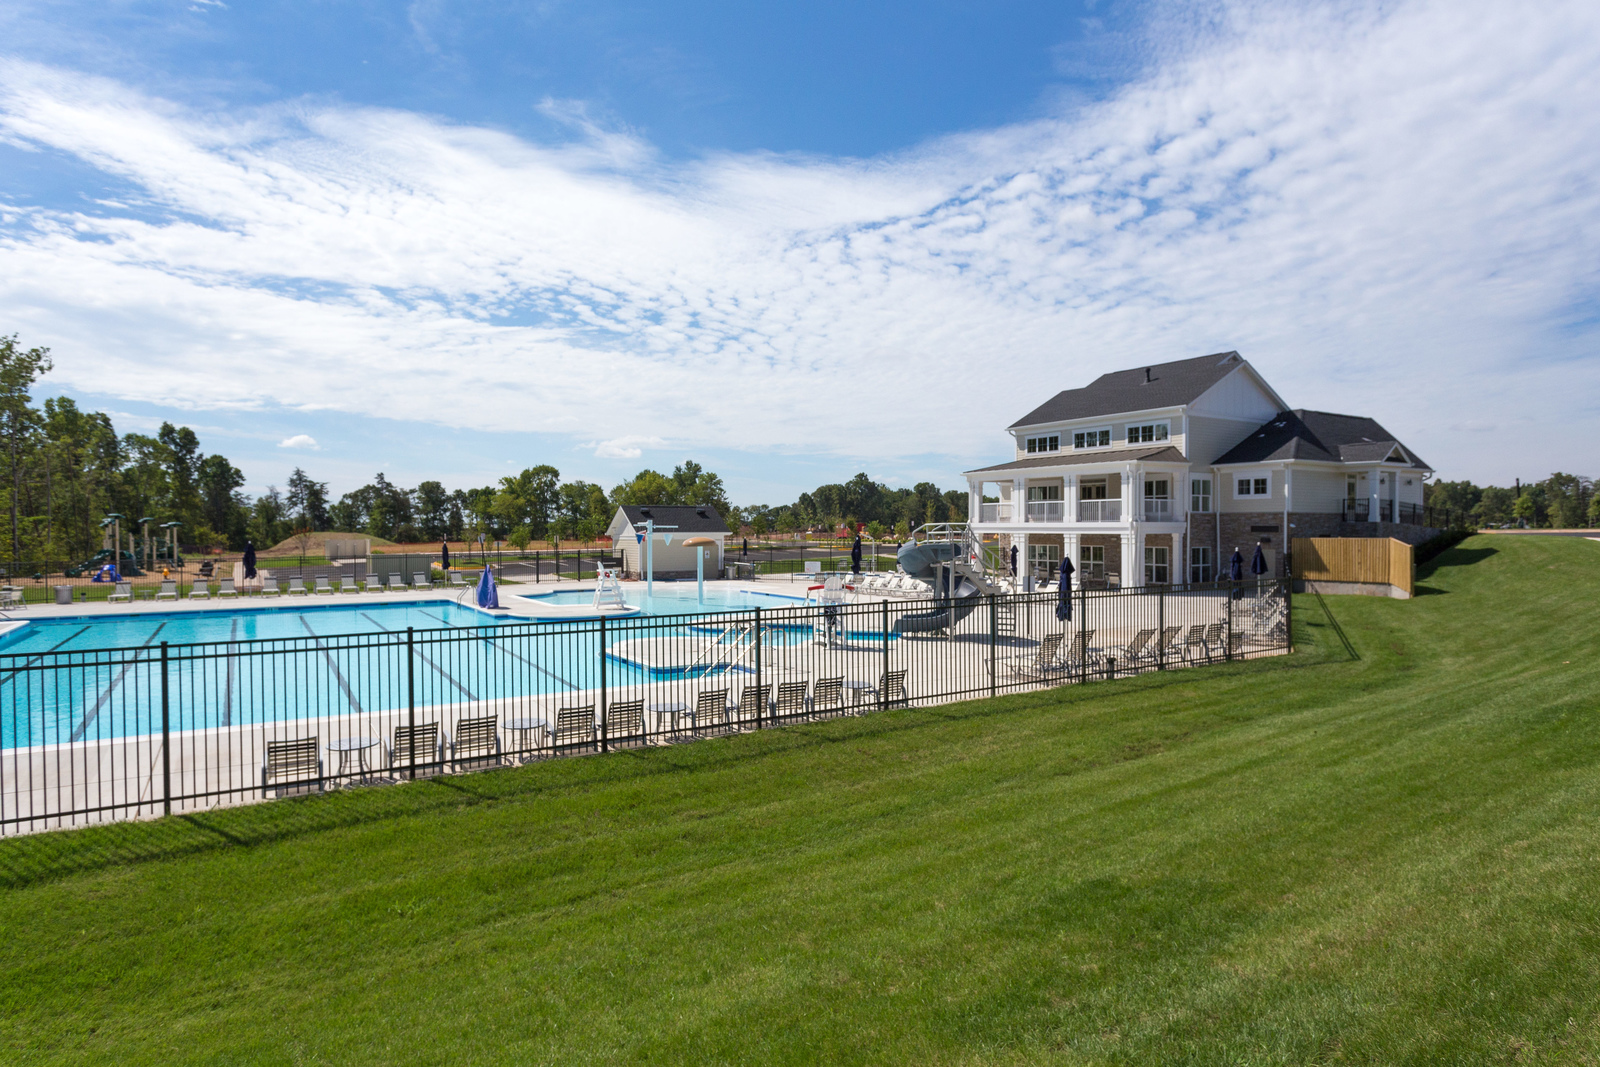 New Homes For Sale At Virginia Manor